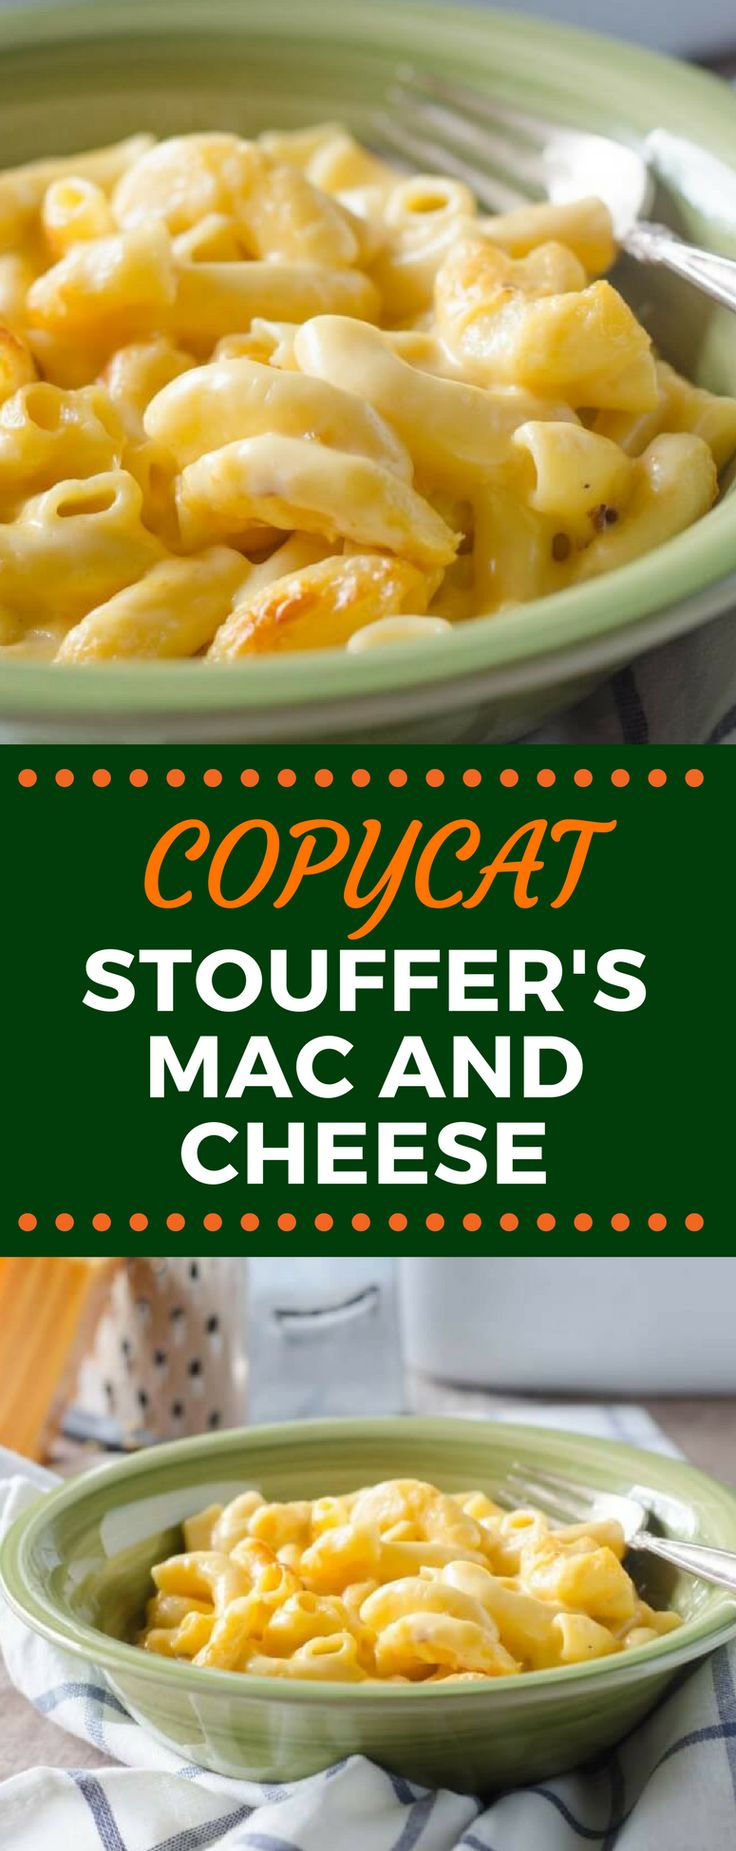 This Copycat Stouffer's Mac and Cheese recipe is the best comfort food hack! This creamy, cheesy dinner idea will leave you wanting more! #copycatrecipes #macandcheese #souffersmacandcheese #easydinnerrecipes